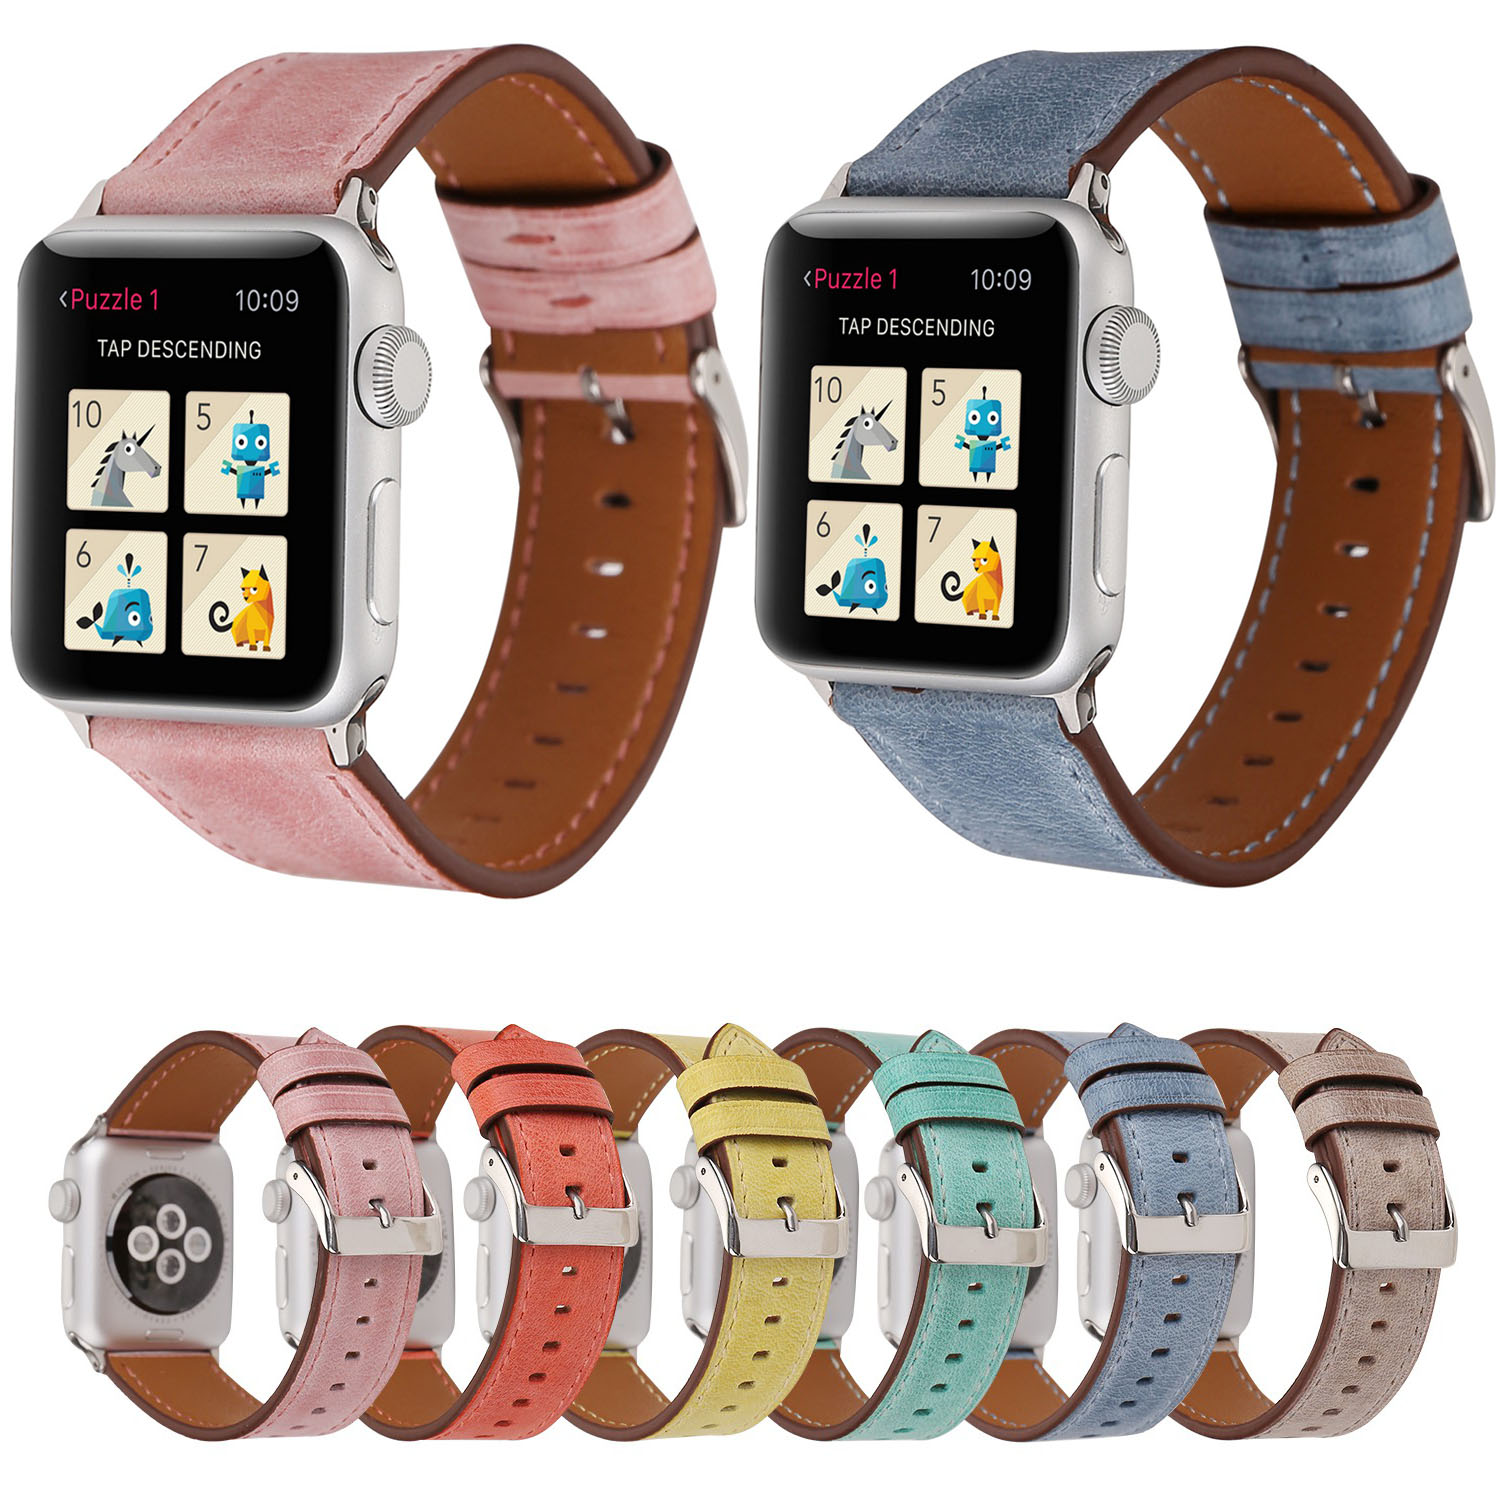 2018 New Colorful Leather Genuine Strap for Apple Watch Band Series 1/2/3 Wristband for iWatch 42mm 38mm Bracelet Accessory